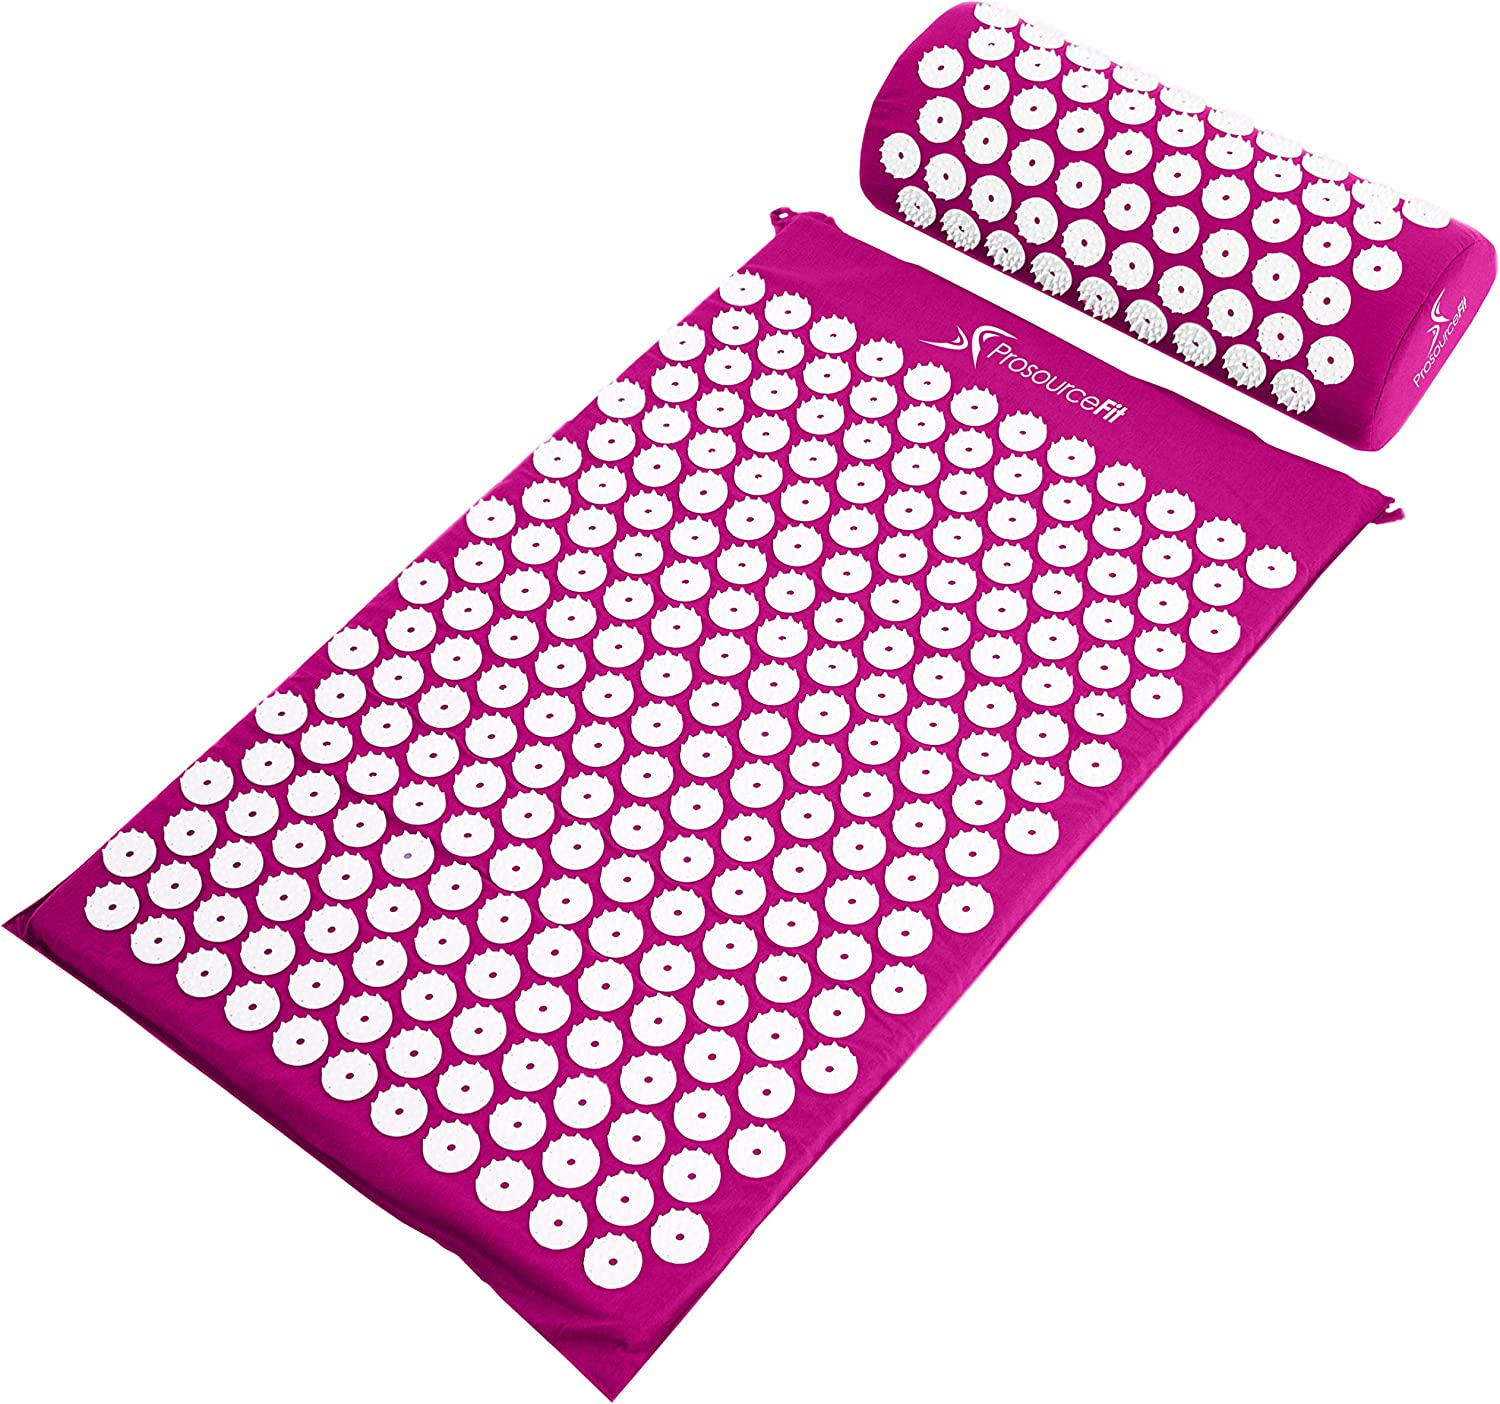 Acupressure Mat and Pillow Set for Back/Neck Pain Relief and Muscle Relaxation - Purple